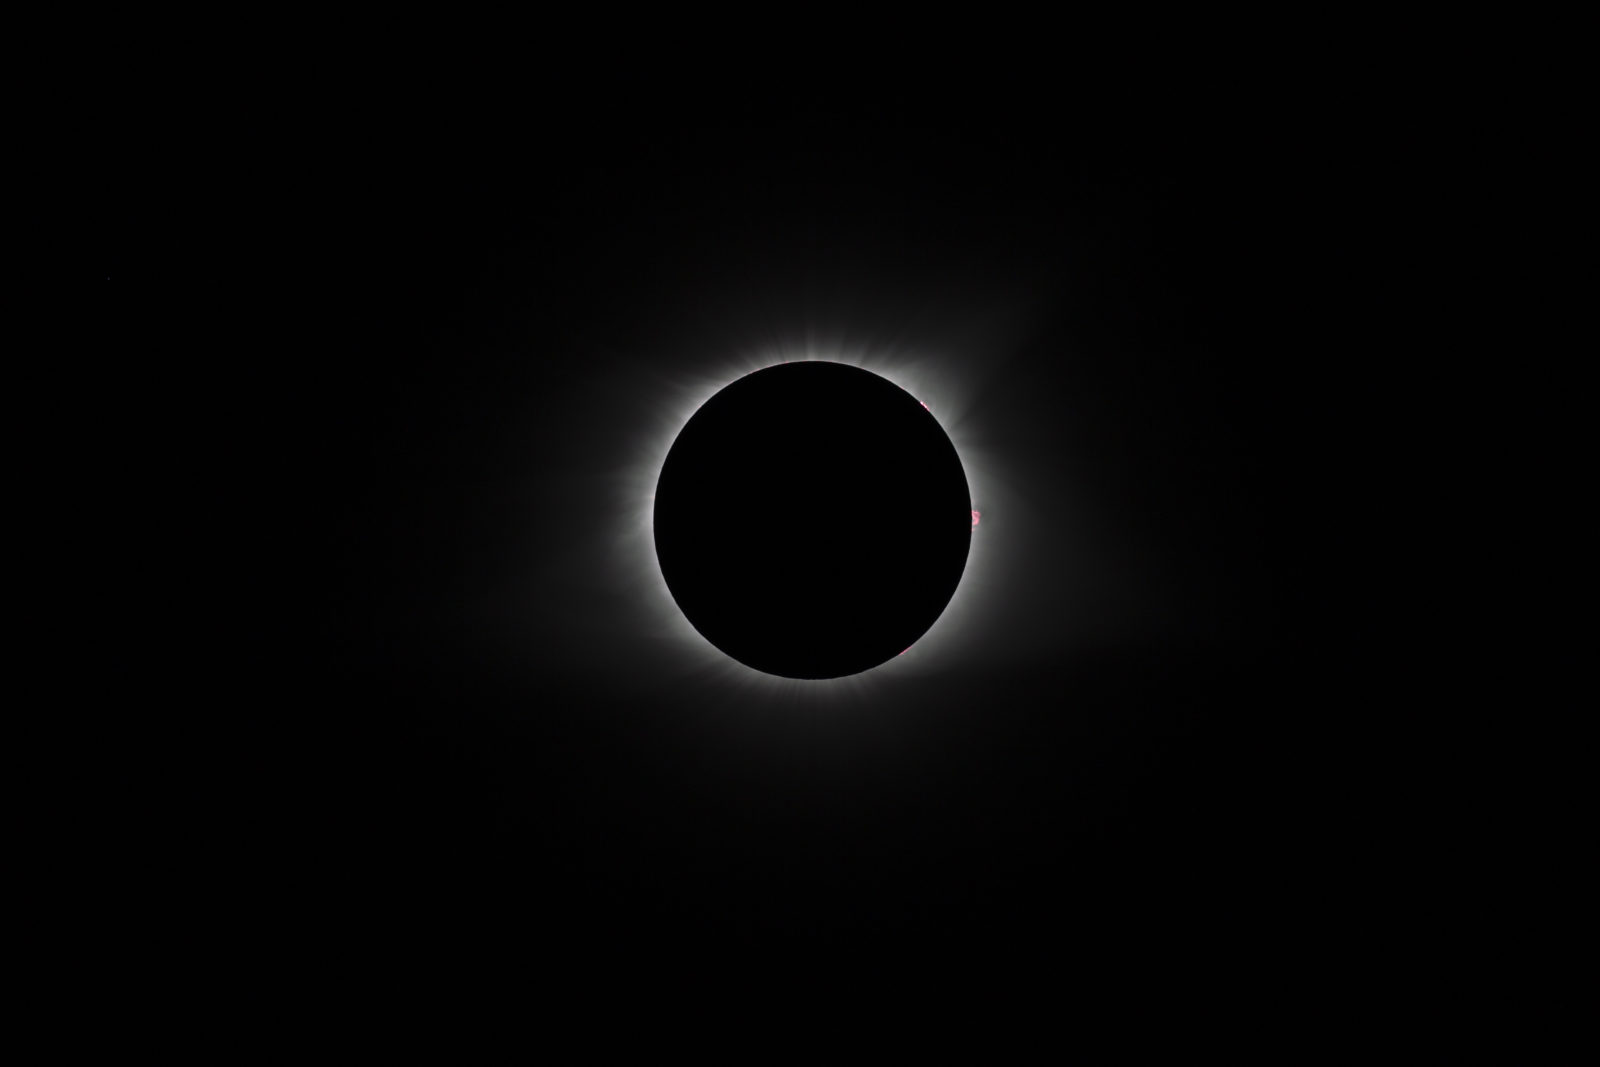 The Great American Eclipse-Prominences